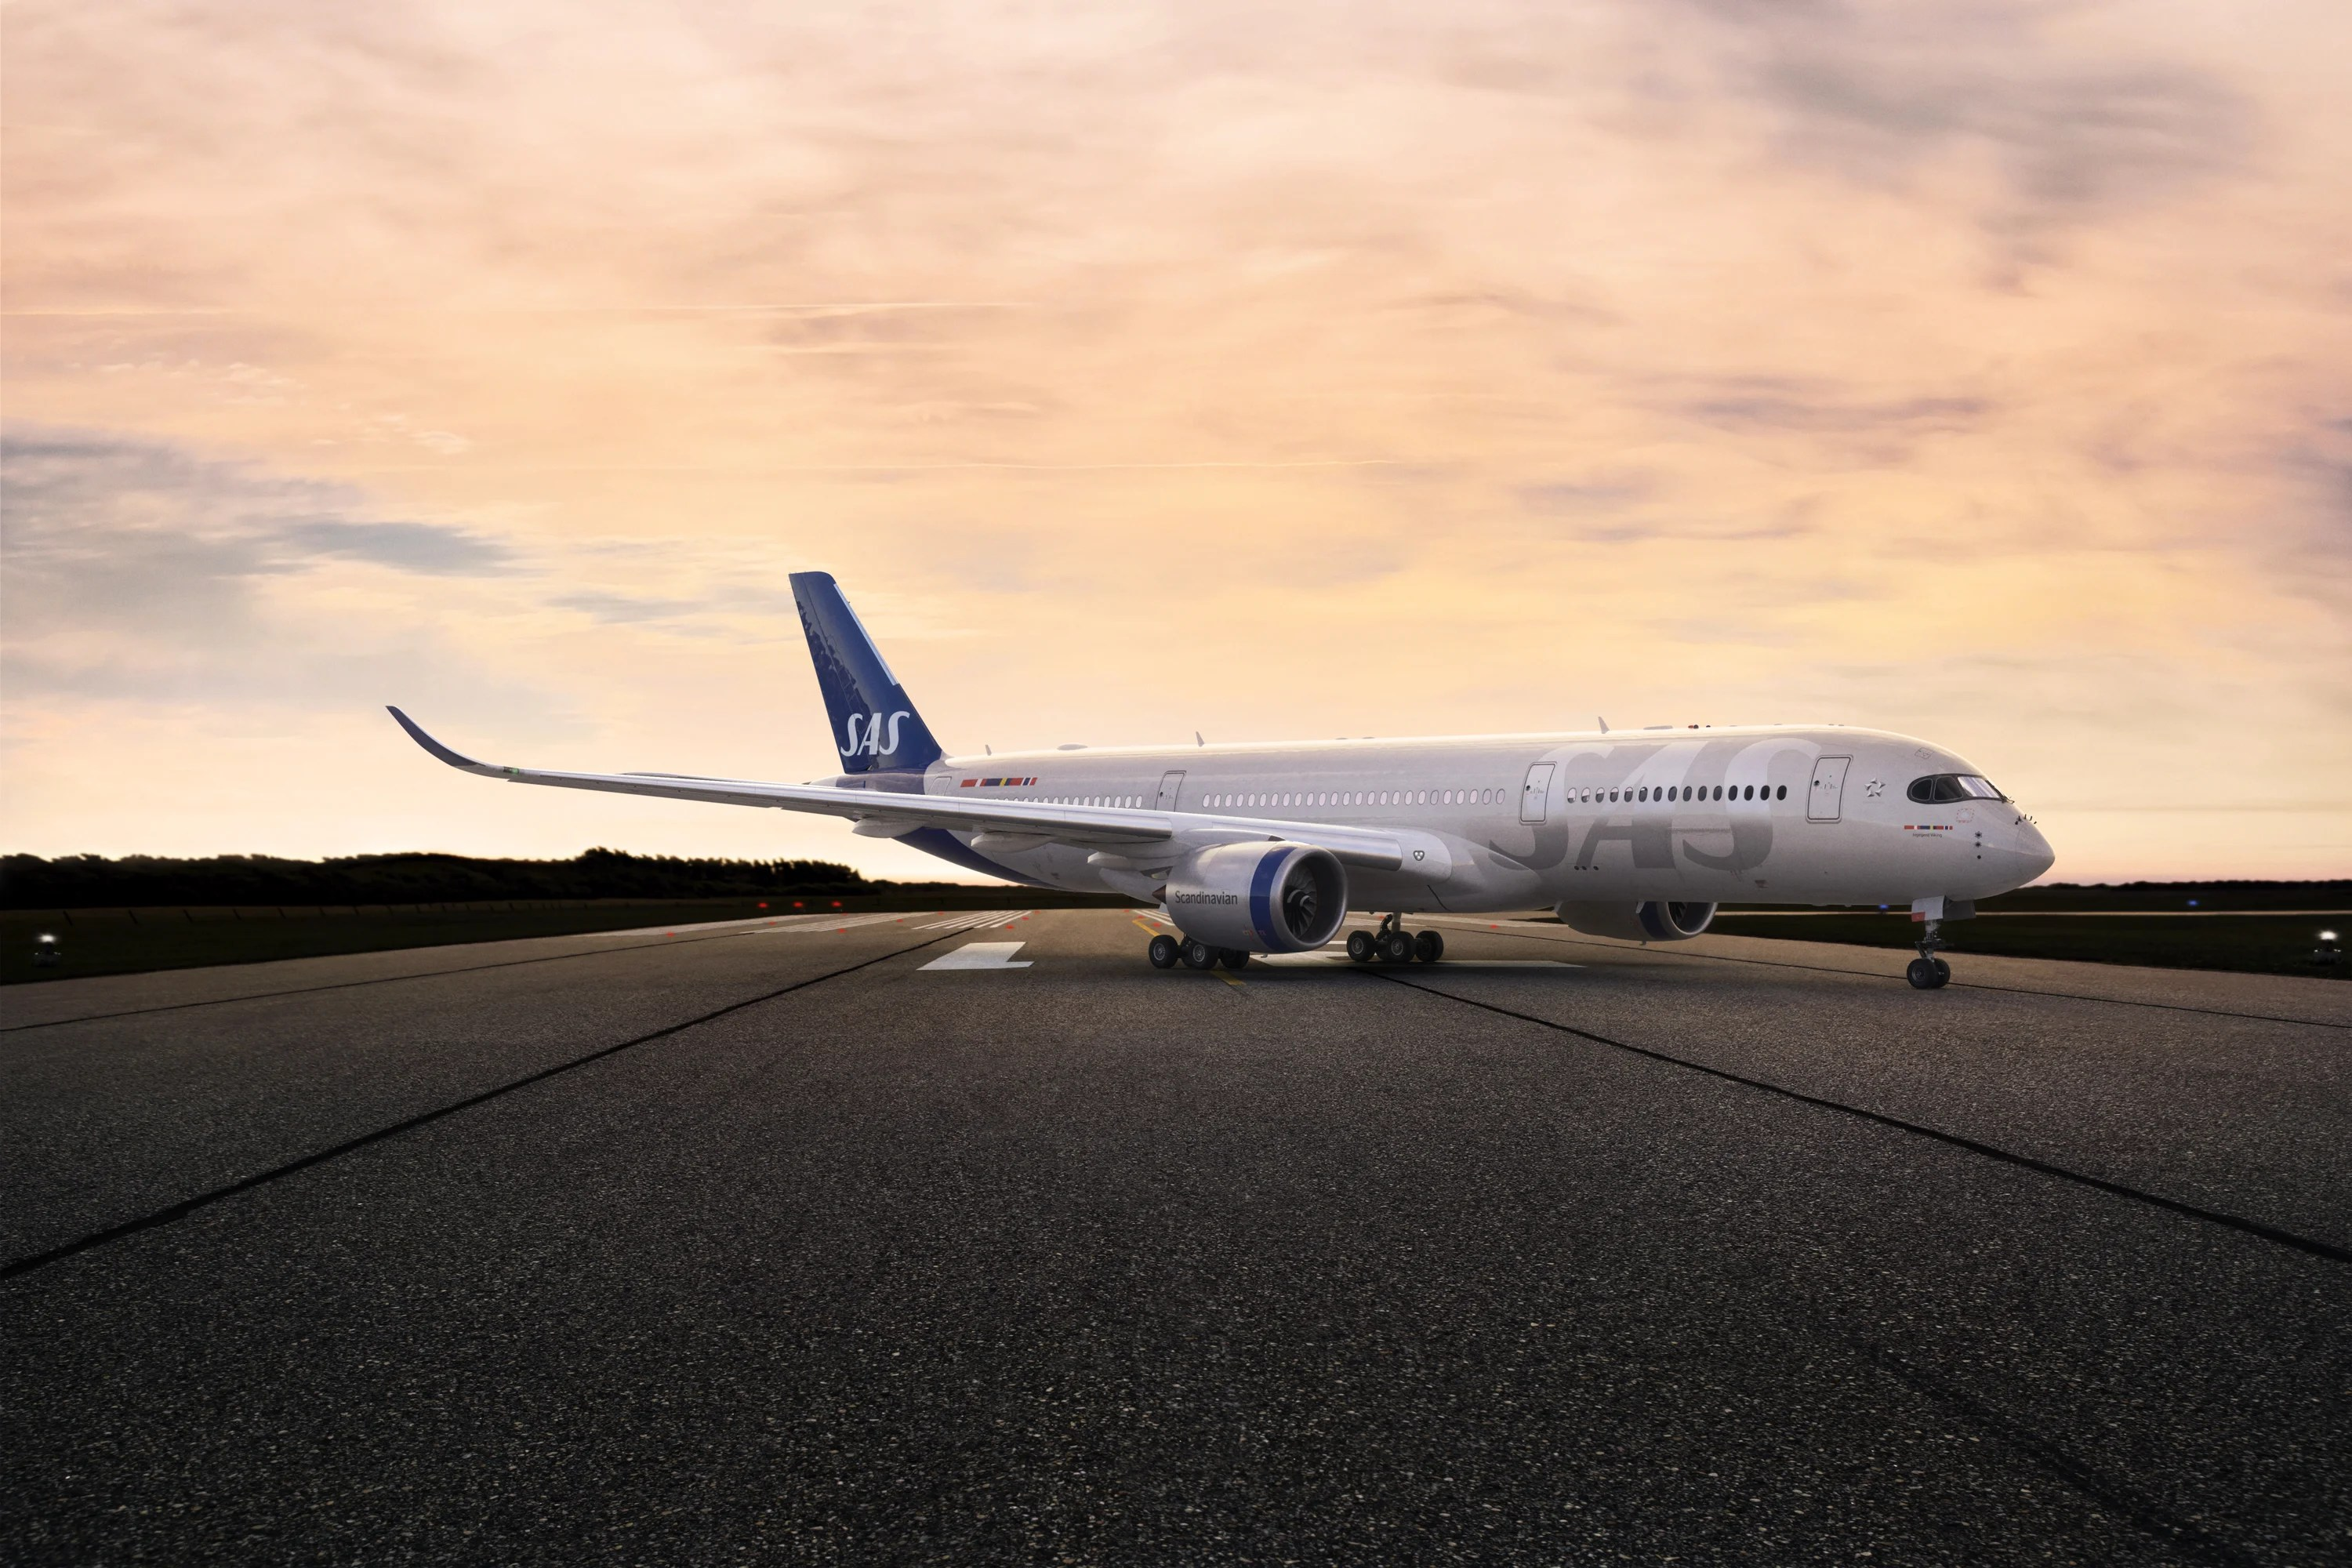 Your first look at the new SAS Airbus A350 that will serve Chicago